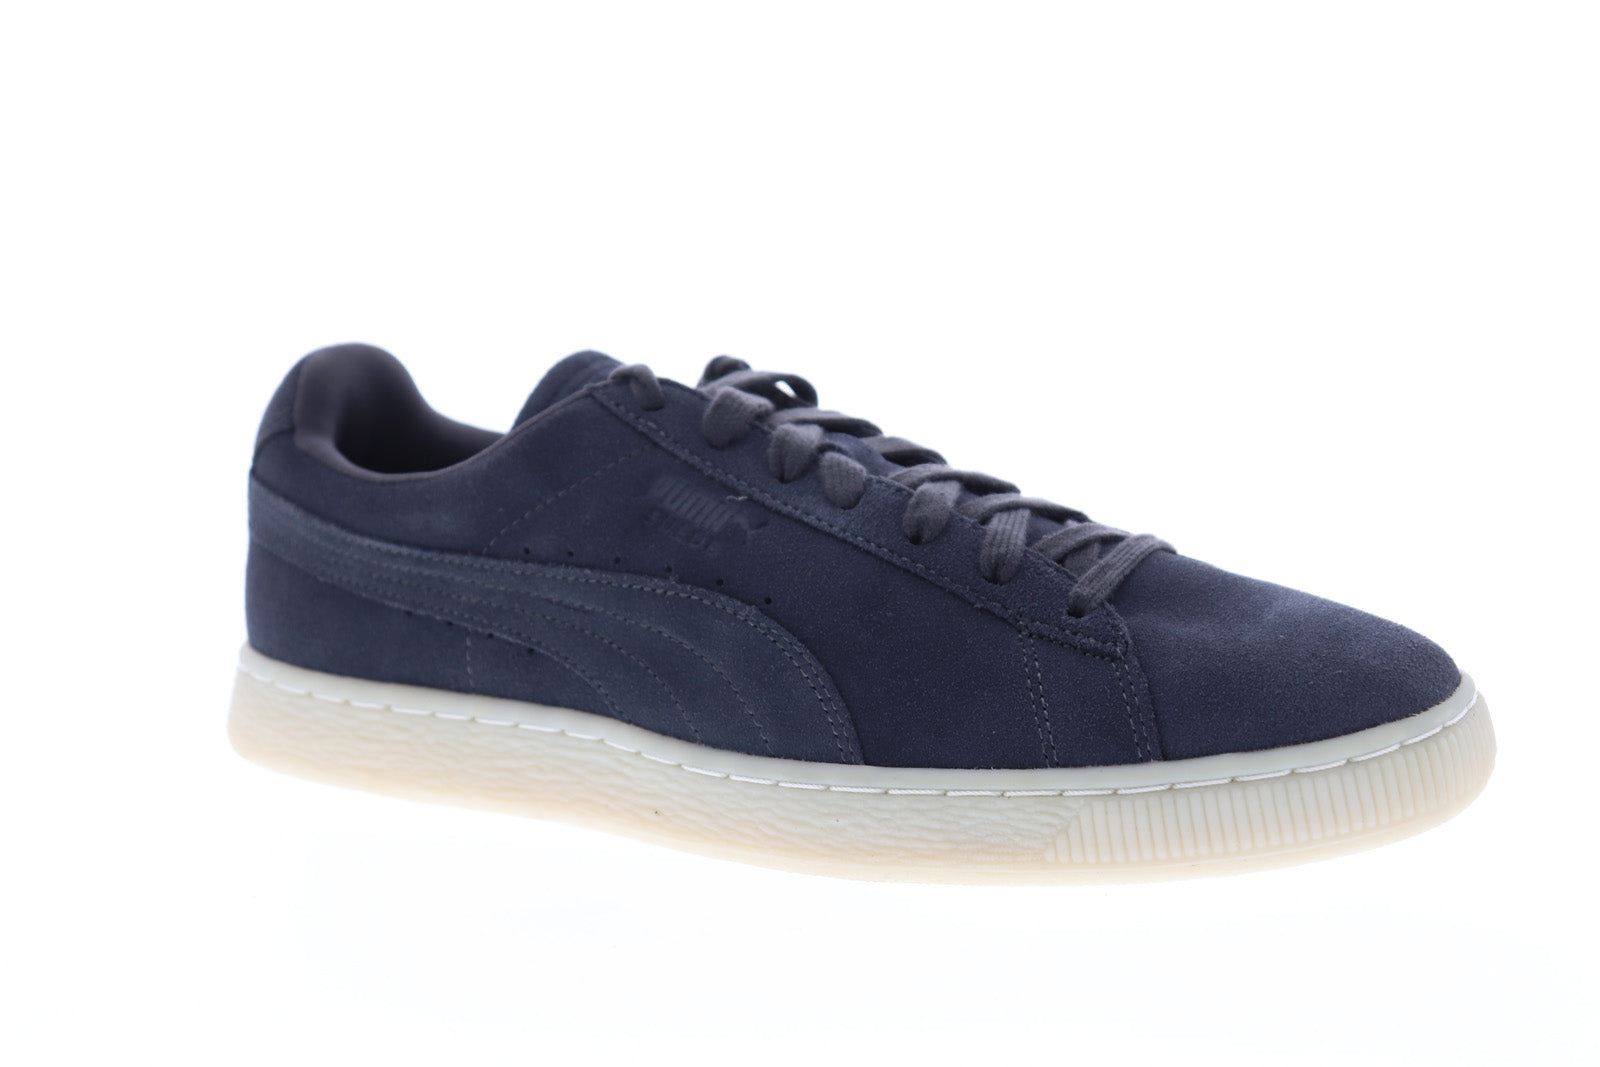 sports shoes 968b9 d433f Puma Suede Classic Colored Mens Blue Suede Low Top Lace Up Sneakers Shoes